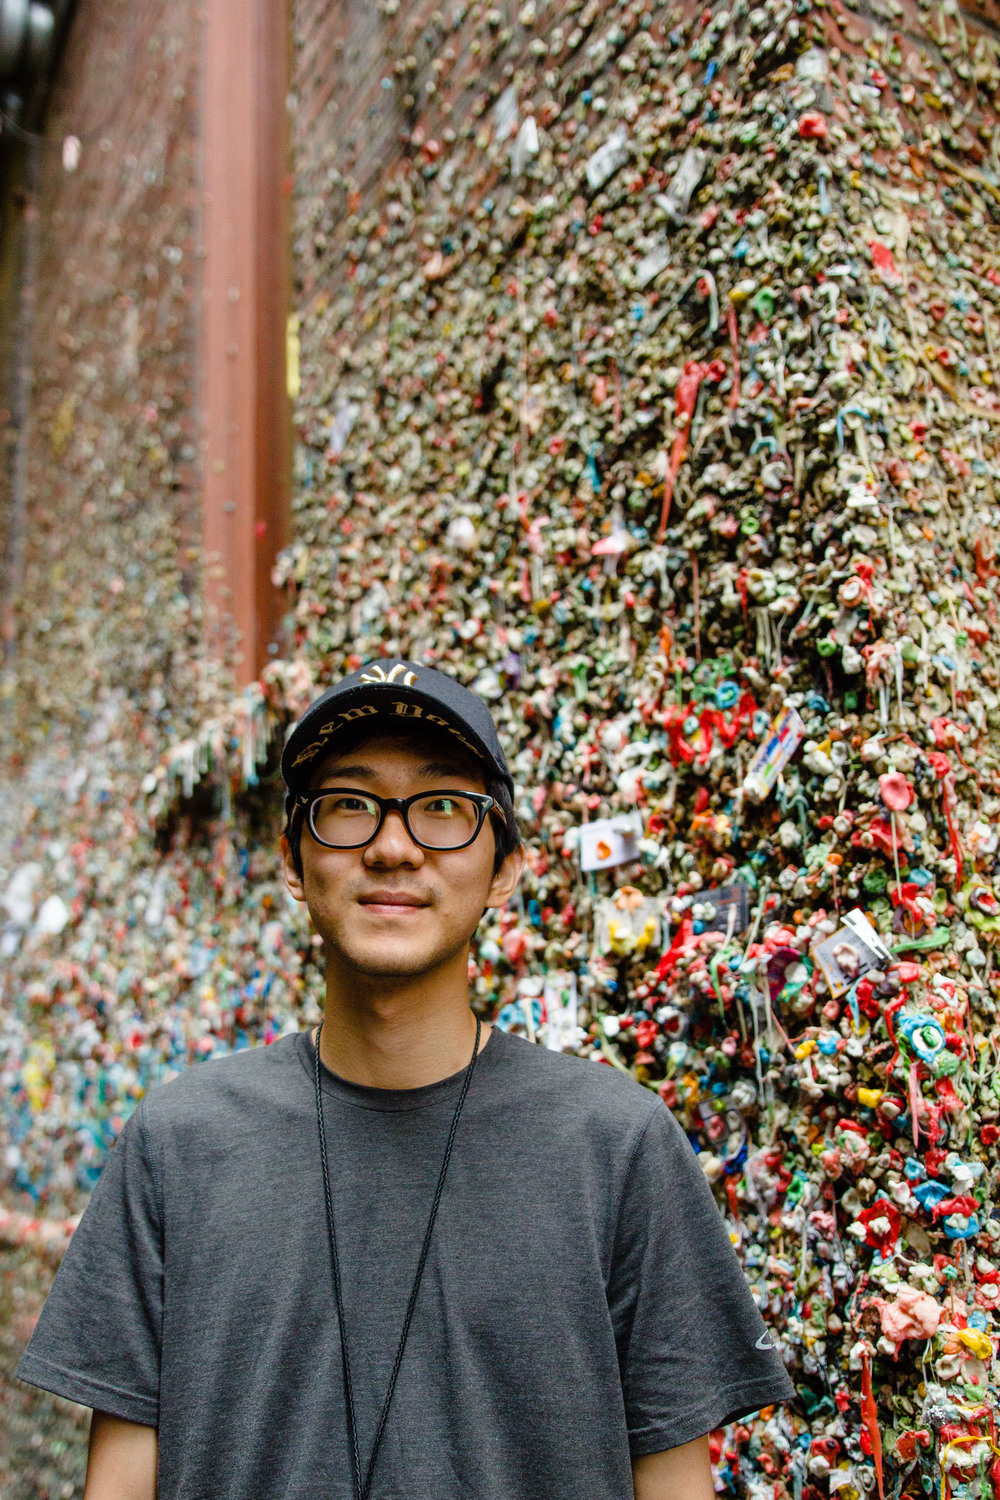 Raymond in front of the Gum Wall (it was kind of gross)